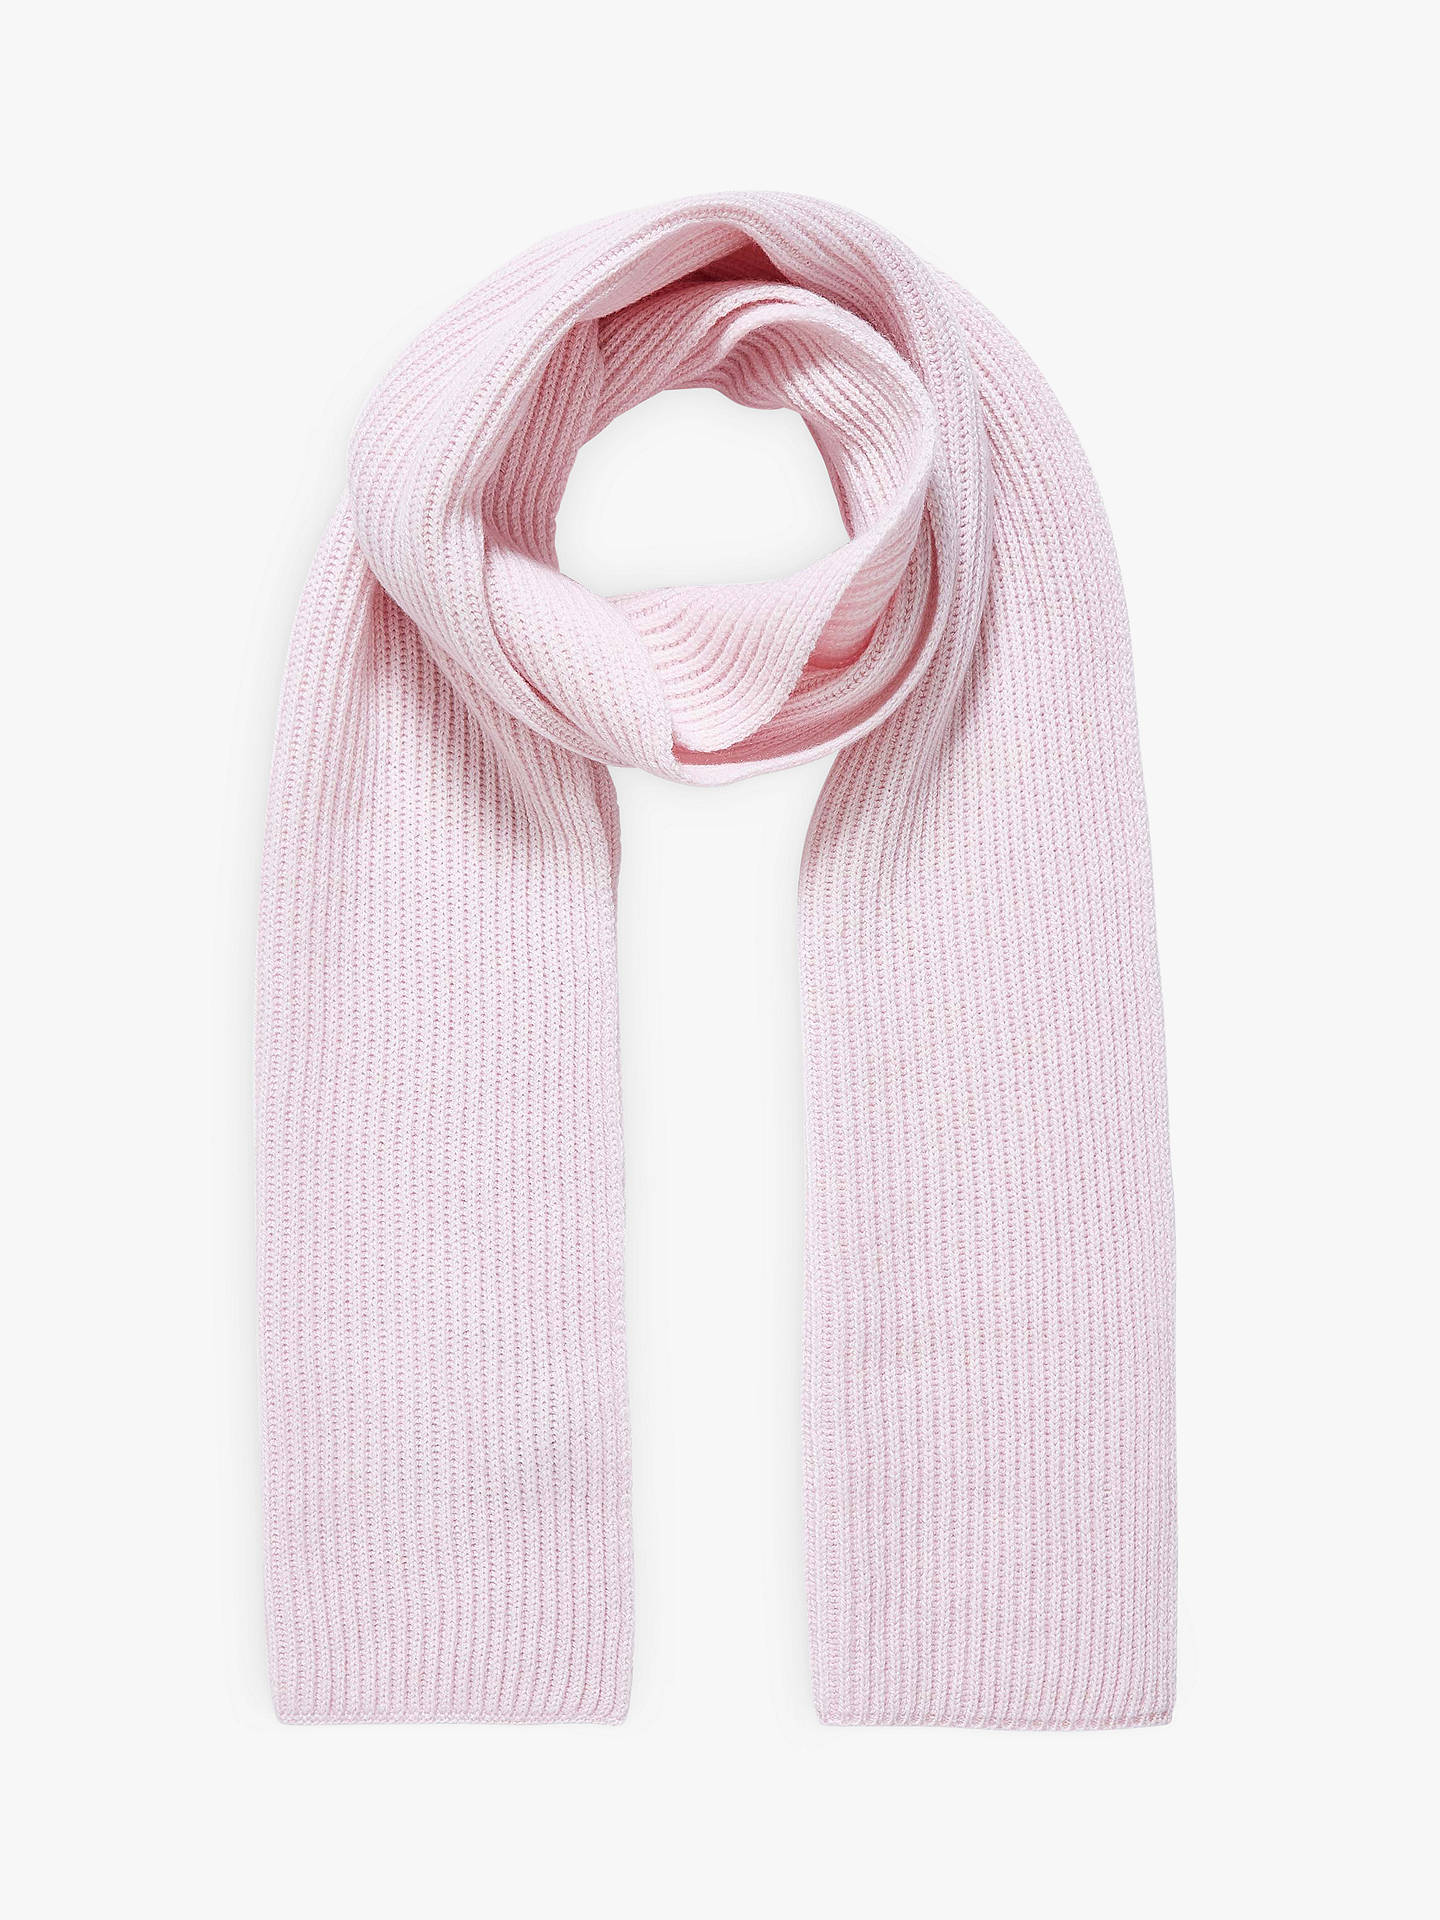 BuyBrora Rib Knit Cashmere Scarf, Tea Rose, One Size Online at johnlewis.com